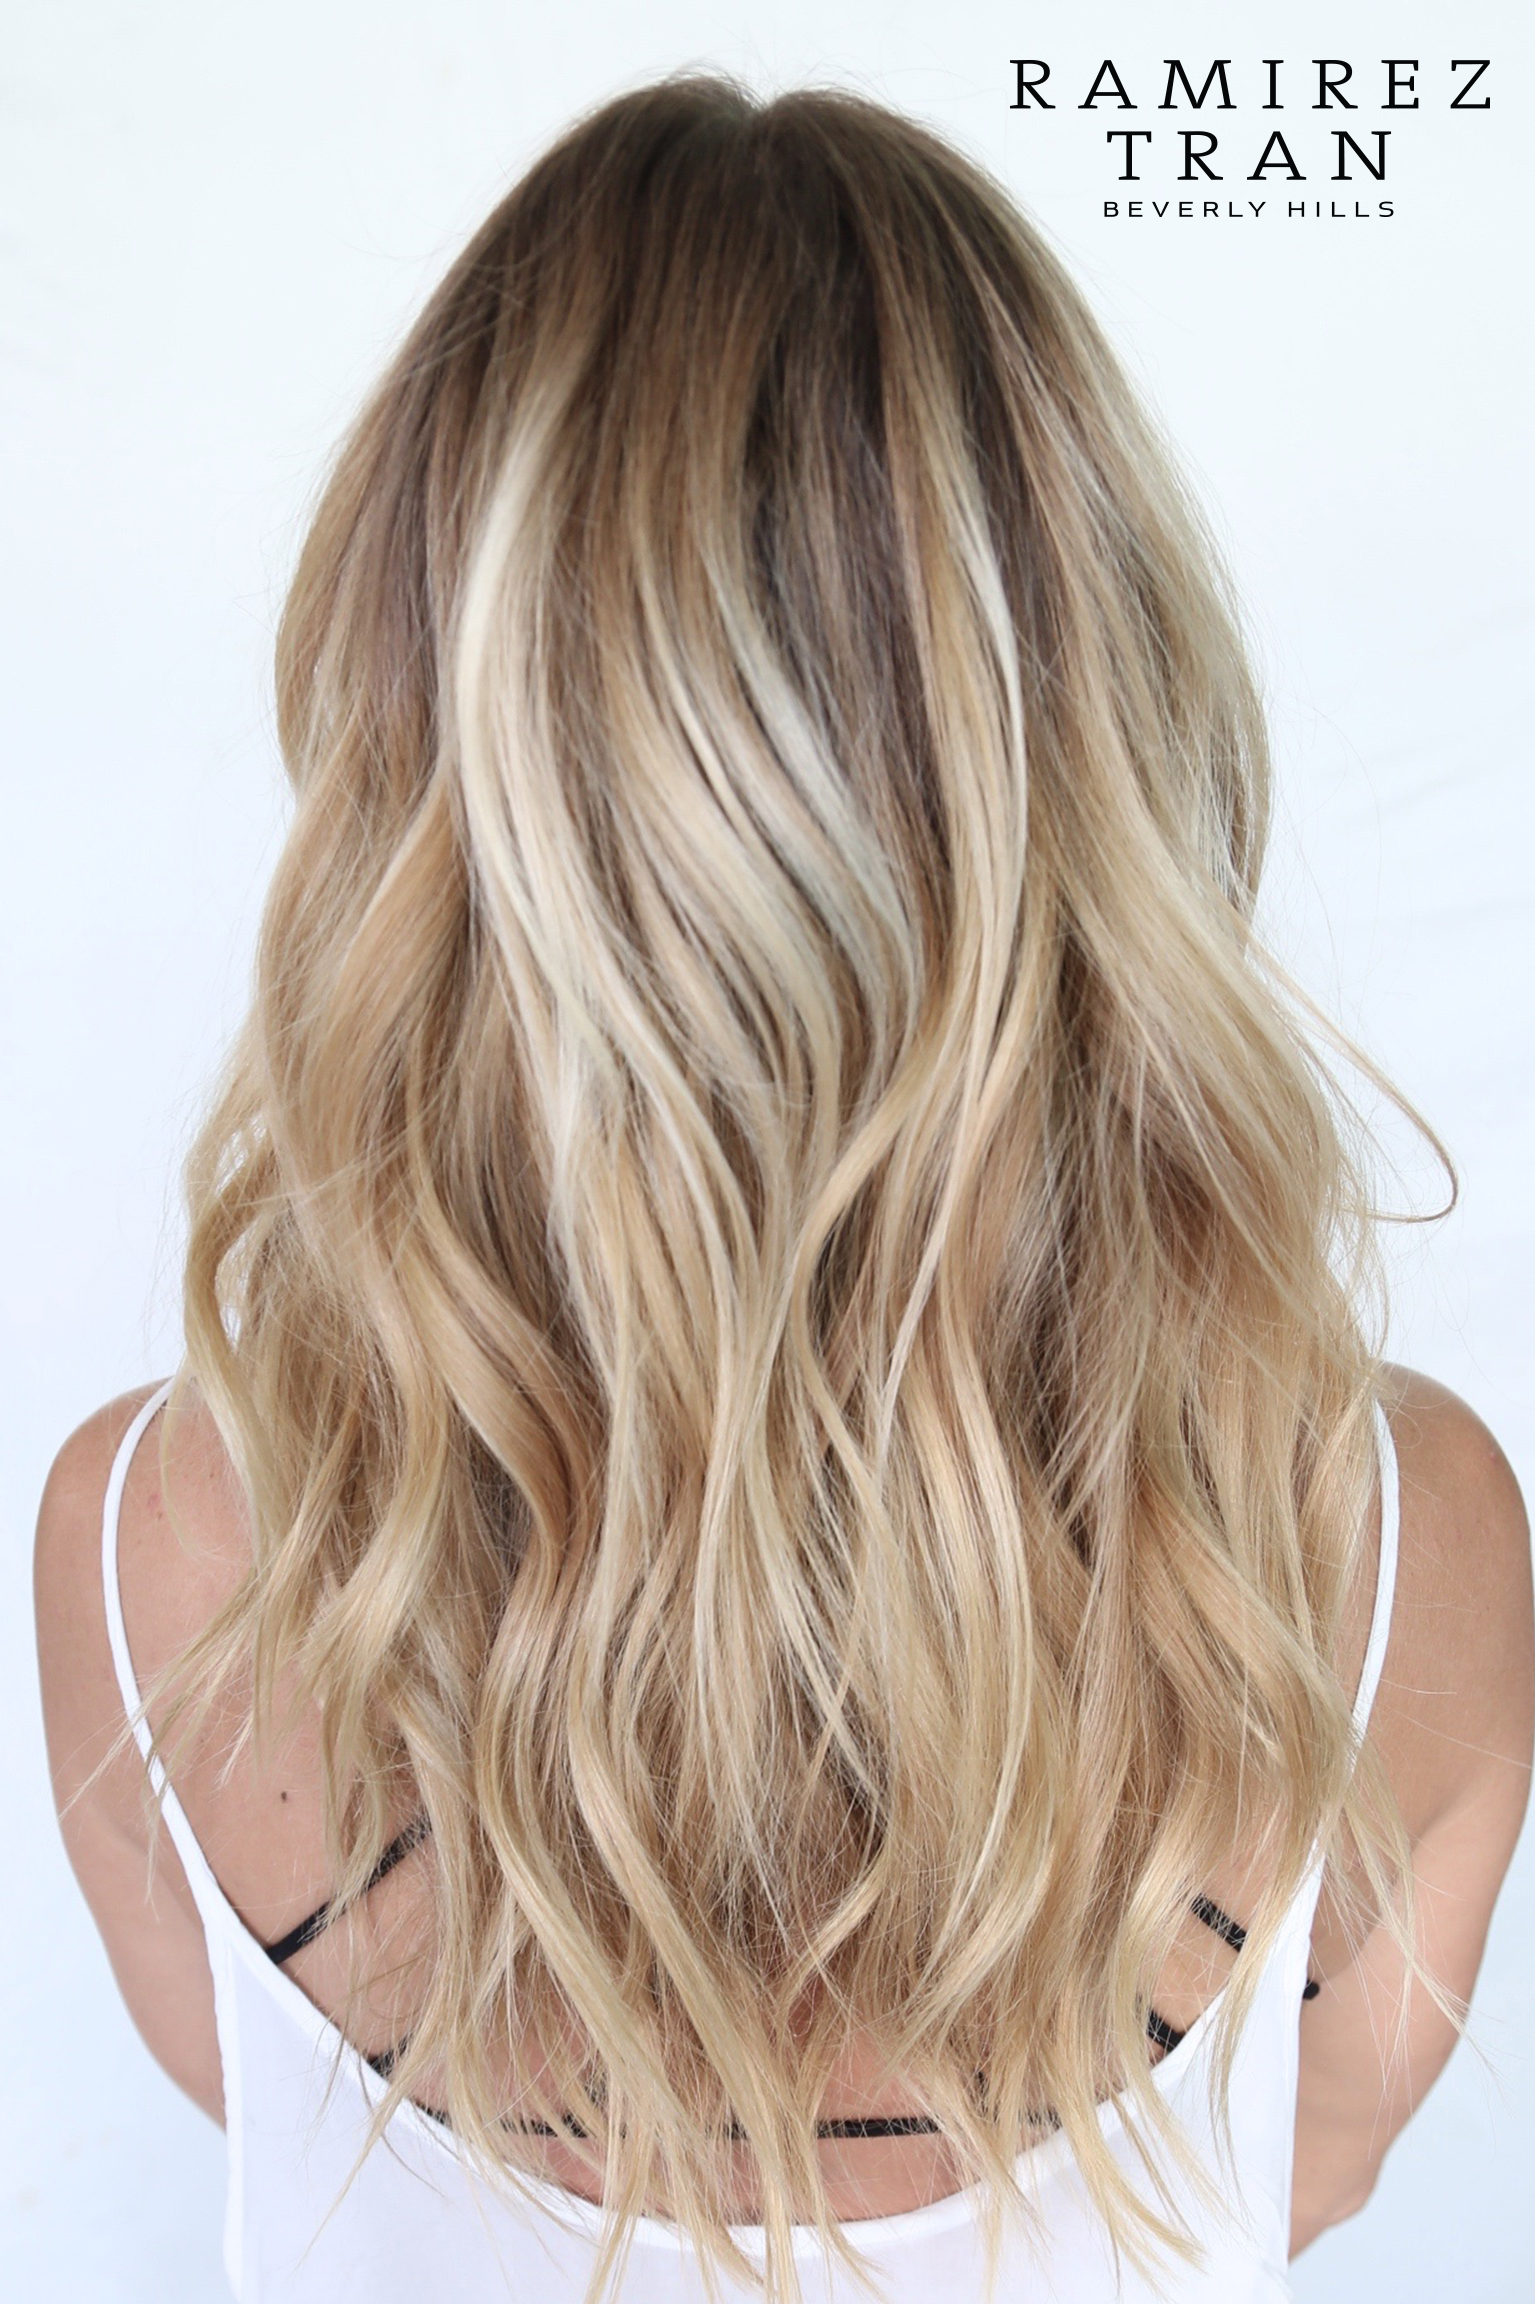 Beachy Blonde In Miami Ramirez Tran Salon